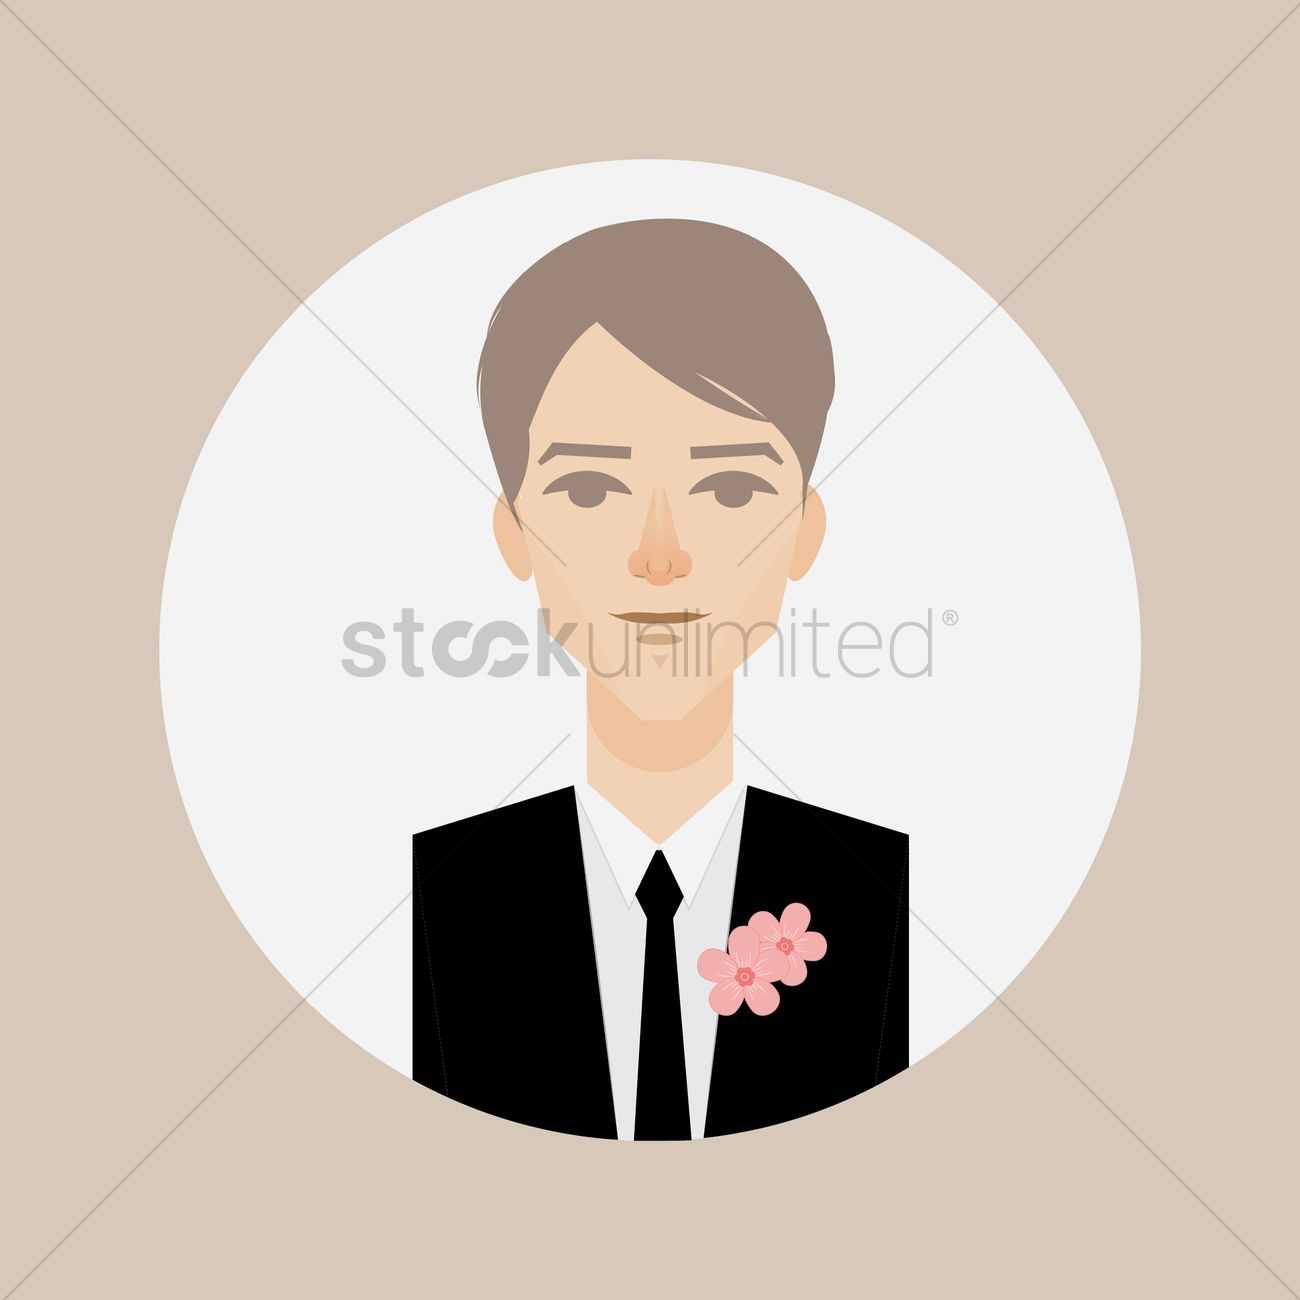 Groom in suit and tie Vector Image - 1457064 | StockUnlimited